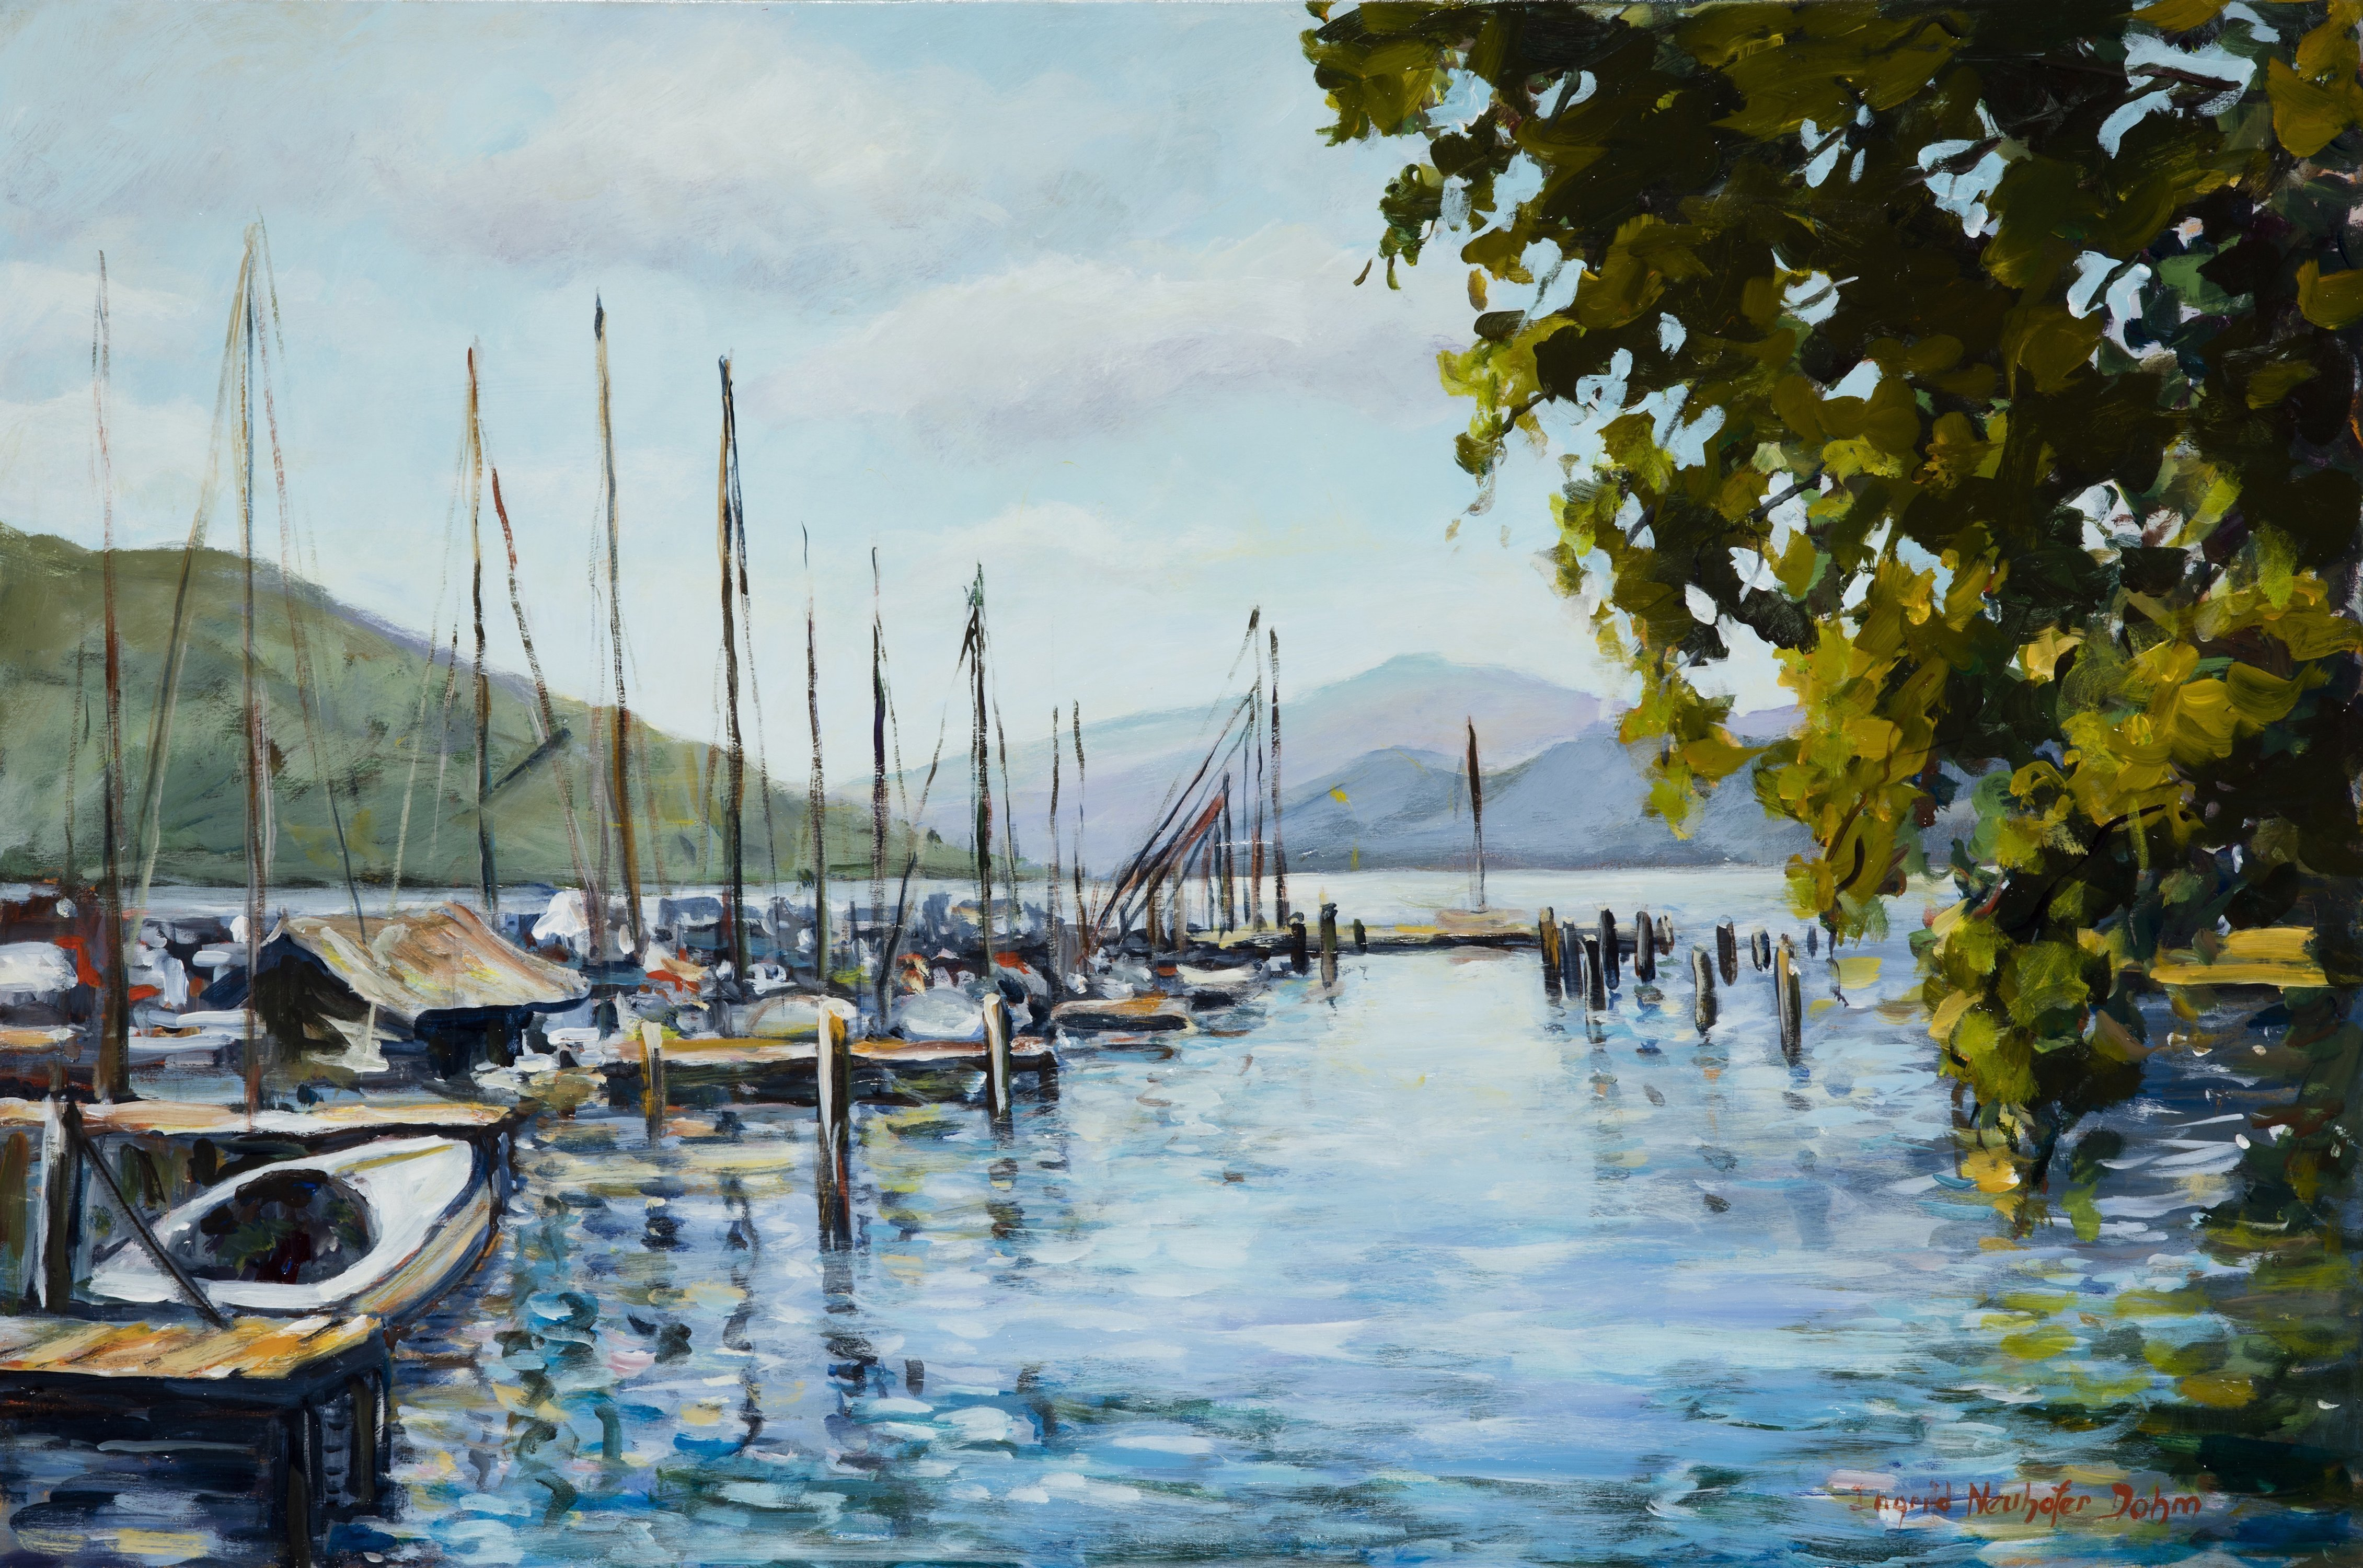 Ingrid Neuhofer Dohm; Attersee Austra, 2013, Original Painting Acrylic, 36 x 24 inches. Artwork description: 241  Austria, Attersee. lake, impressionism, representational decorative, contemporary, traditional, IngridDohm, fine artist, fine art, original, ...